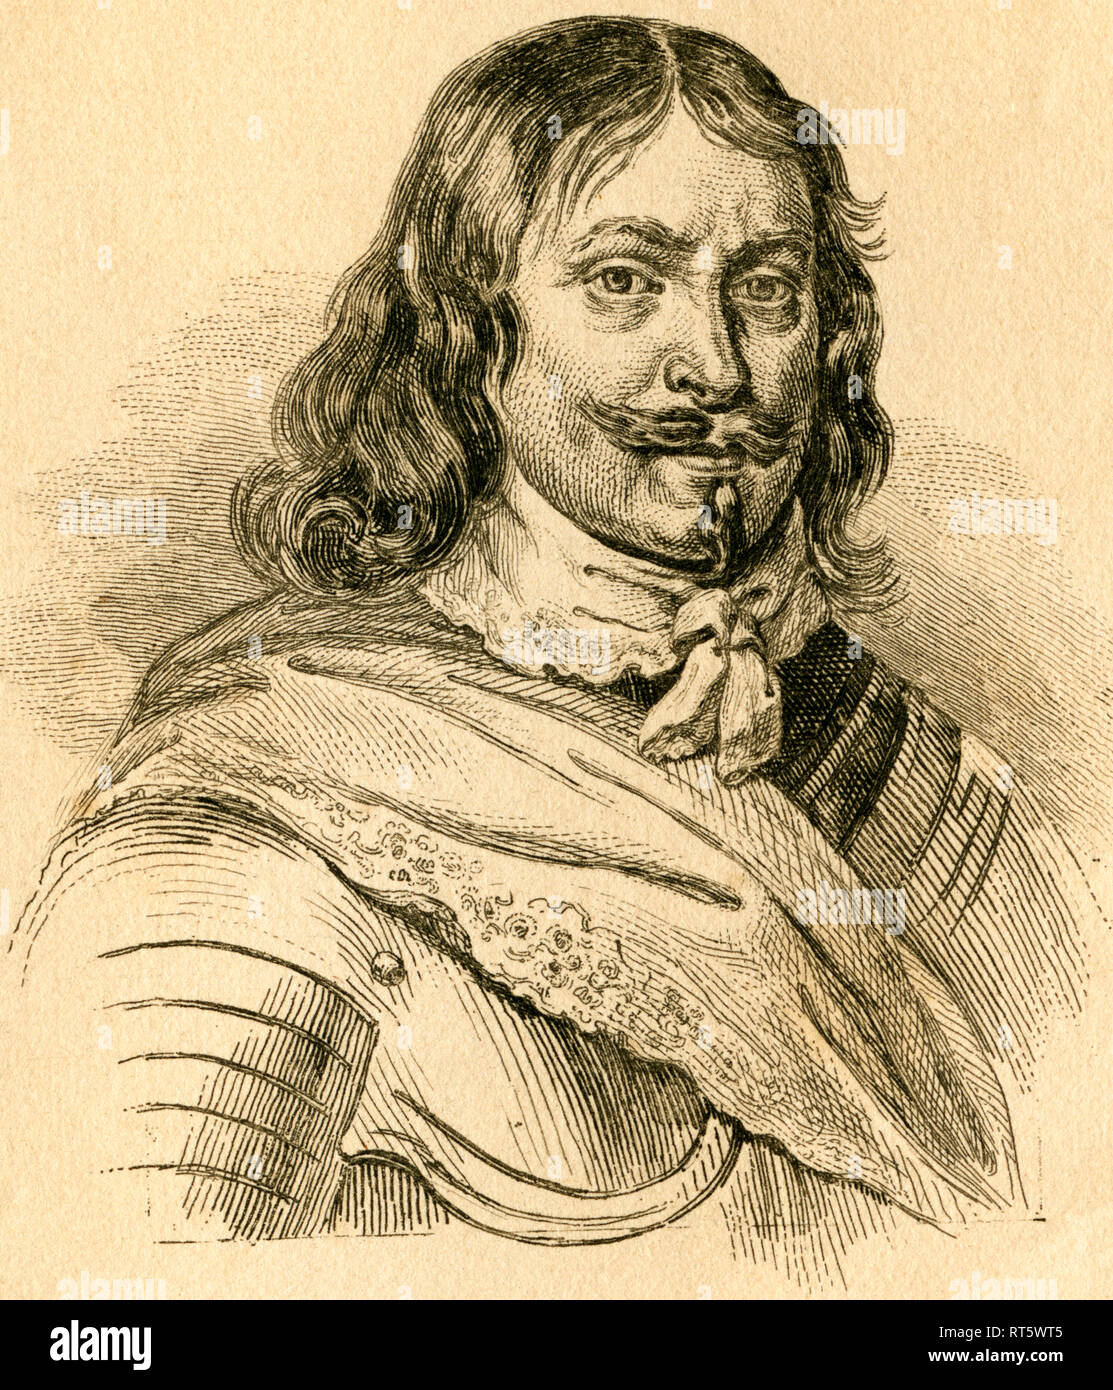 Lennart Torstensson, Swedish Field Marshall, 17th century, steel engraving from an book or magazine, about the 1840th., Artist's Copyright has not to be cleared - Stock Image